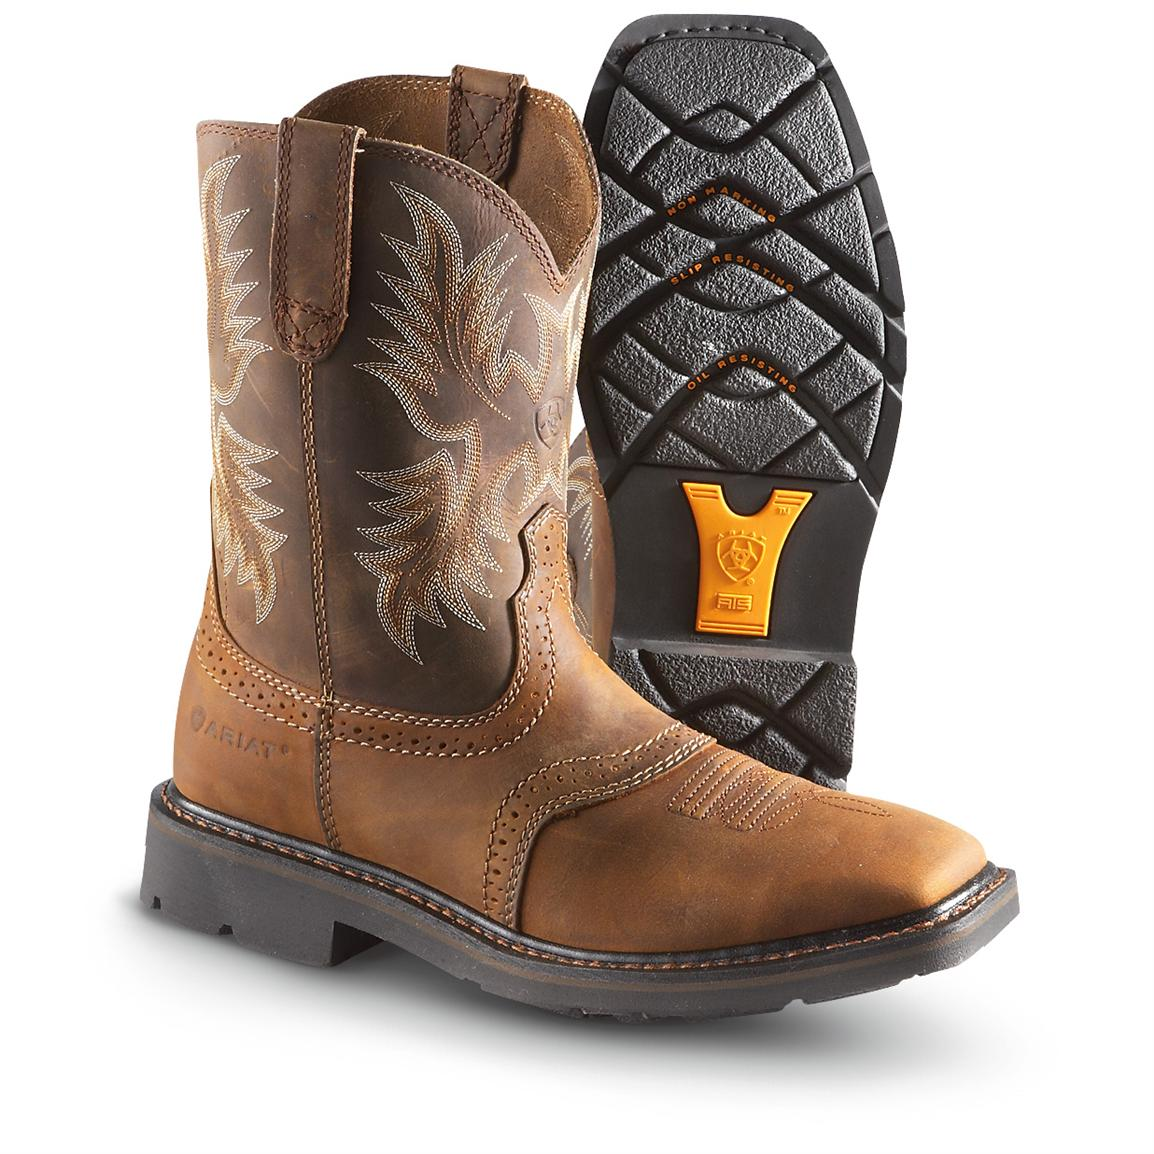 Ariat Boots Near Me , Boot Yc